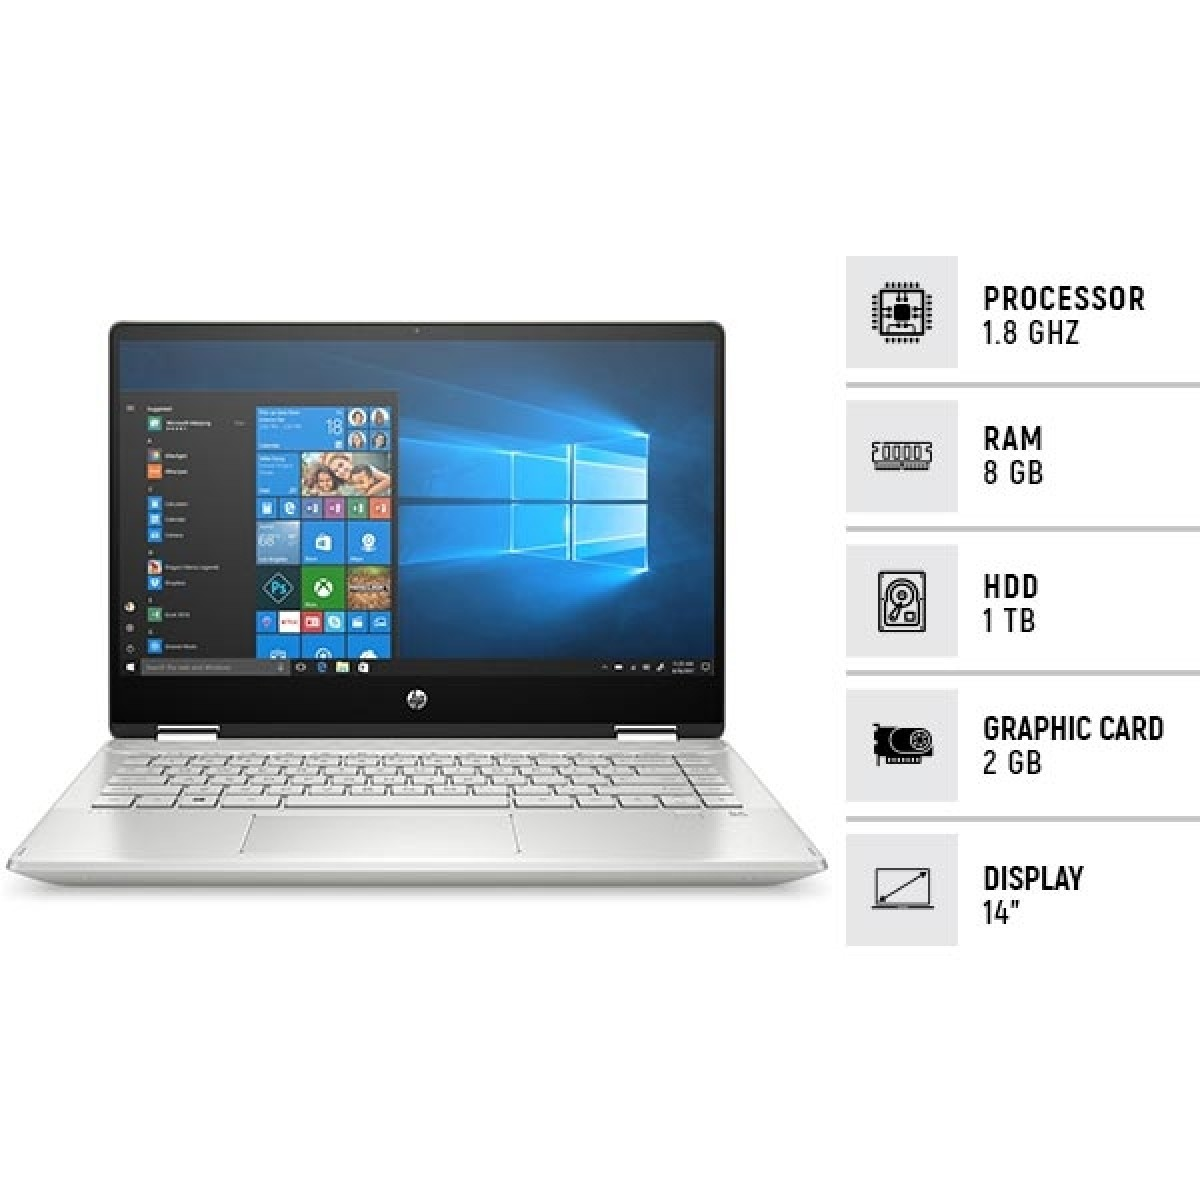 Hp Pavilion X360 Core I7 10th Gen Touch 2 In 1 Laptop Price In Pakistan Buy Hp Pavilion 8gb 1tb Geforce Mx250 Touch 2 In 1 Laptop Natural Silver 14 Dh1008tx Ishopping Pk